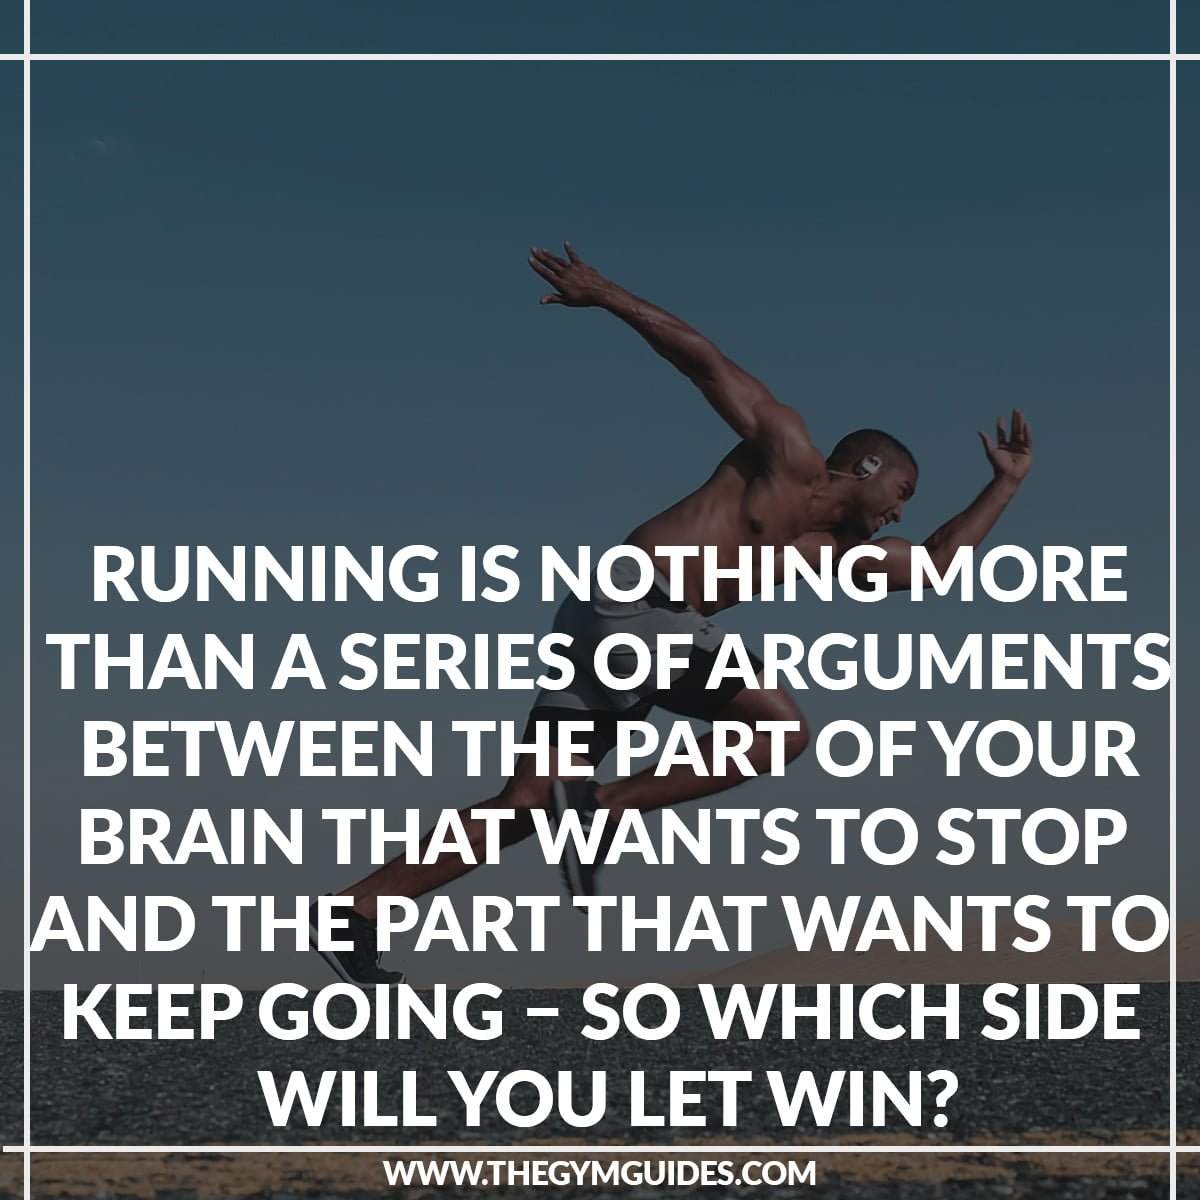 Running is nothing more than a series of Arguments between the part of your BRAIN that wants to Stop and the part that wants to keep going – so which side will you let win